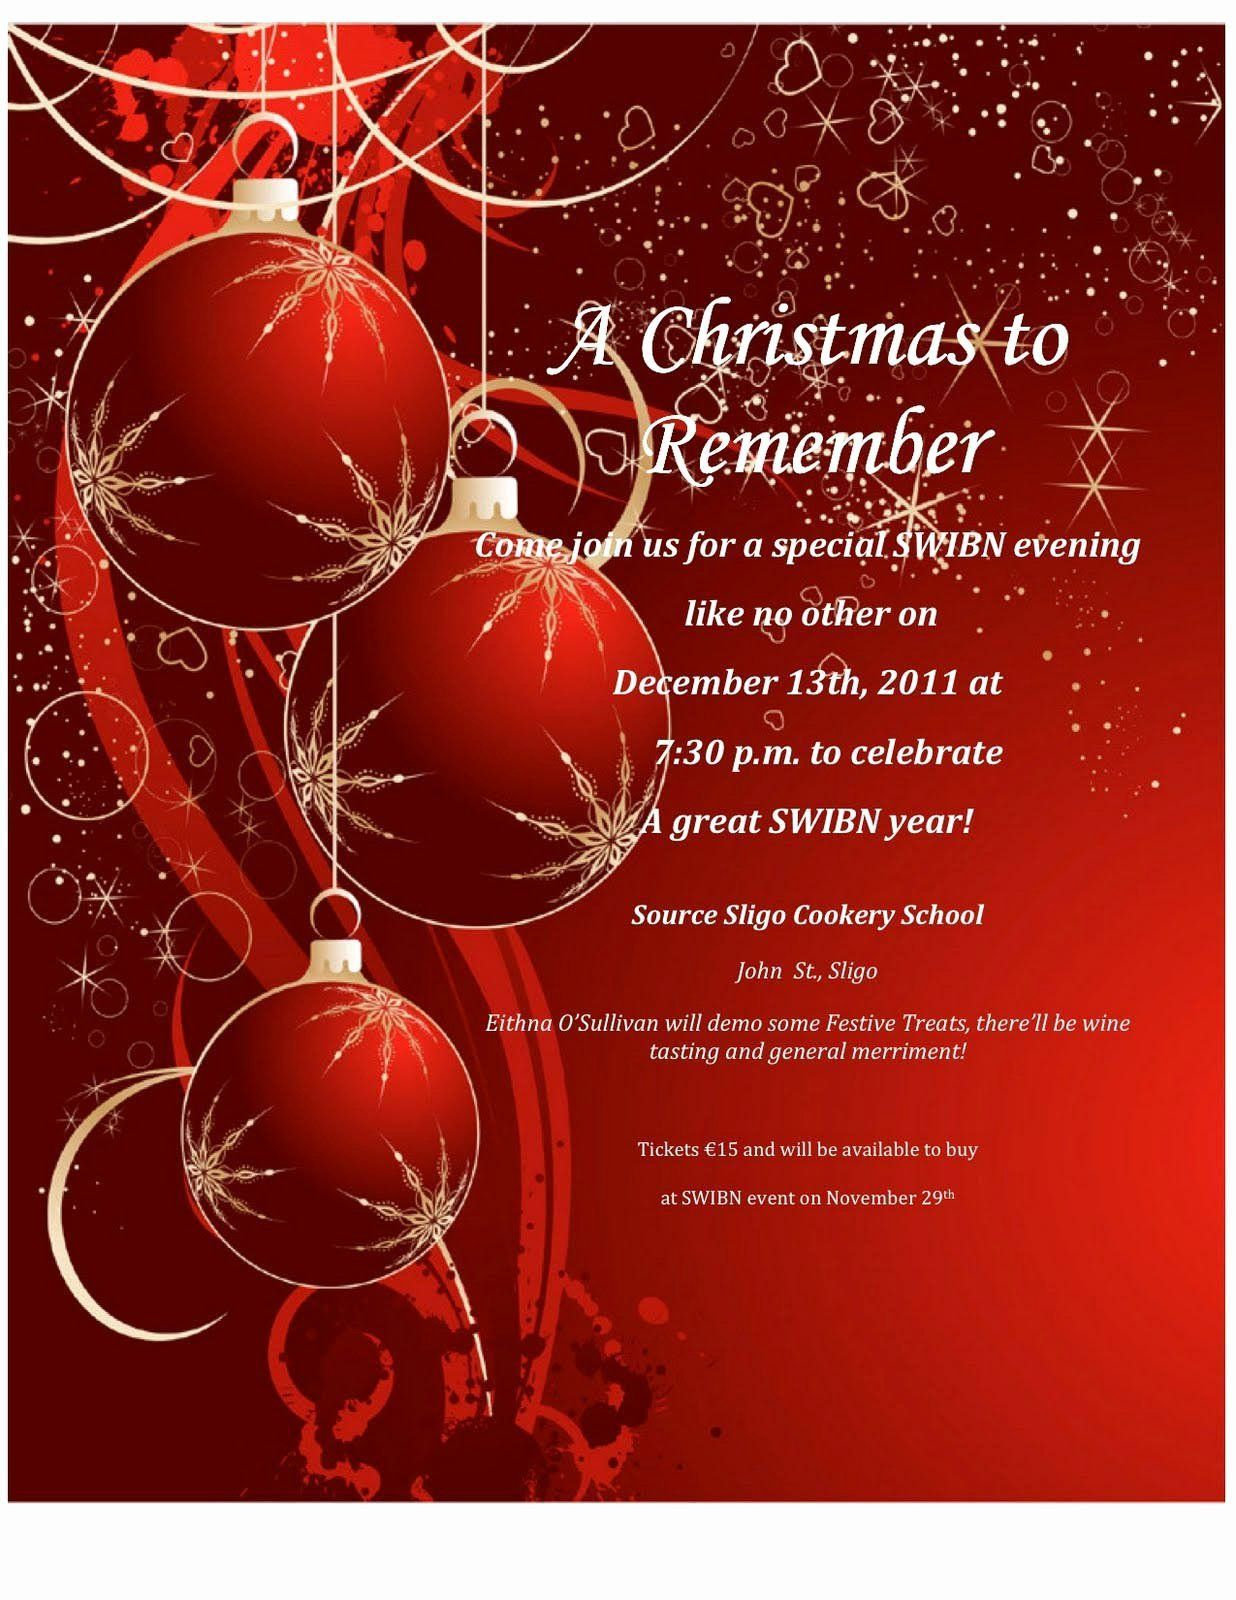 008 Exceptional Christma Party Invite Template Word Picture  Holiday Free Invitation Wording ExampleFull